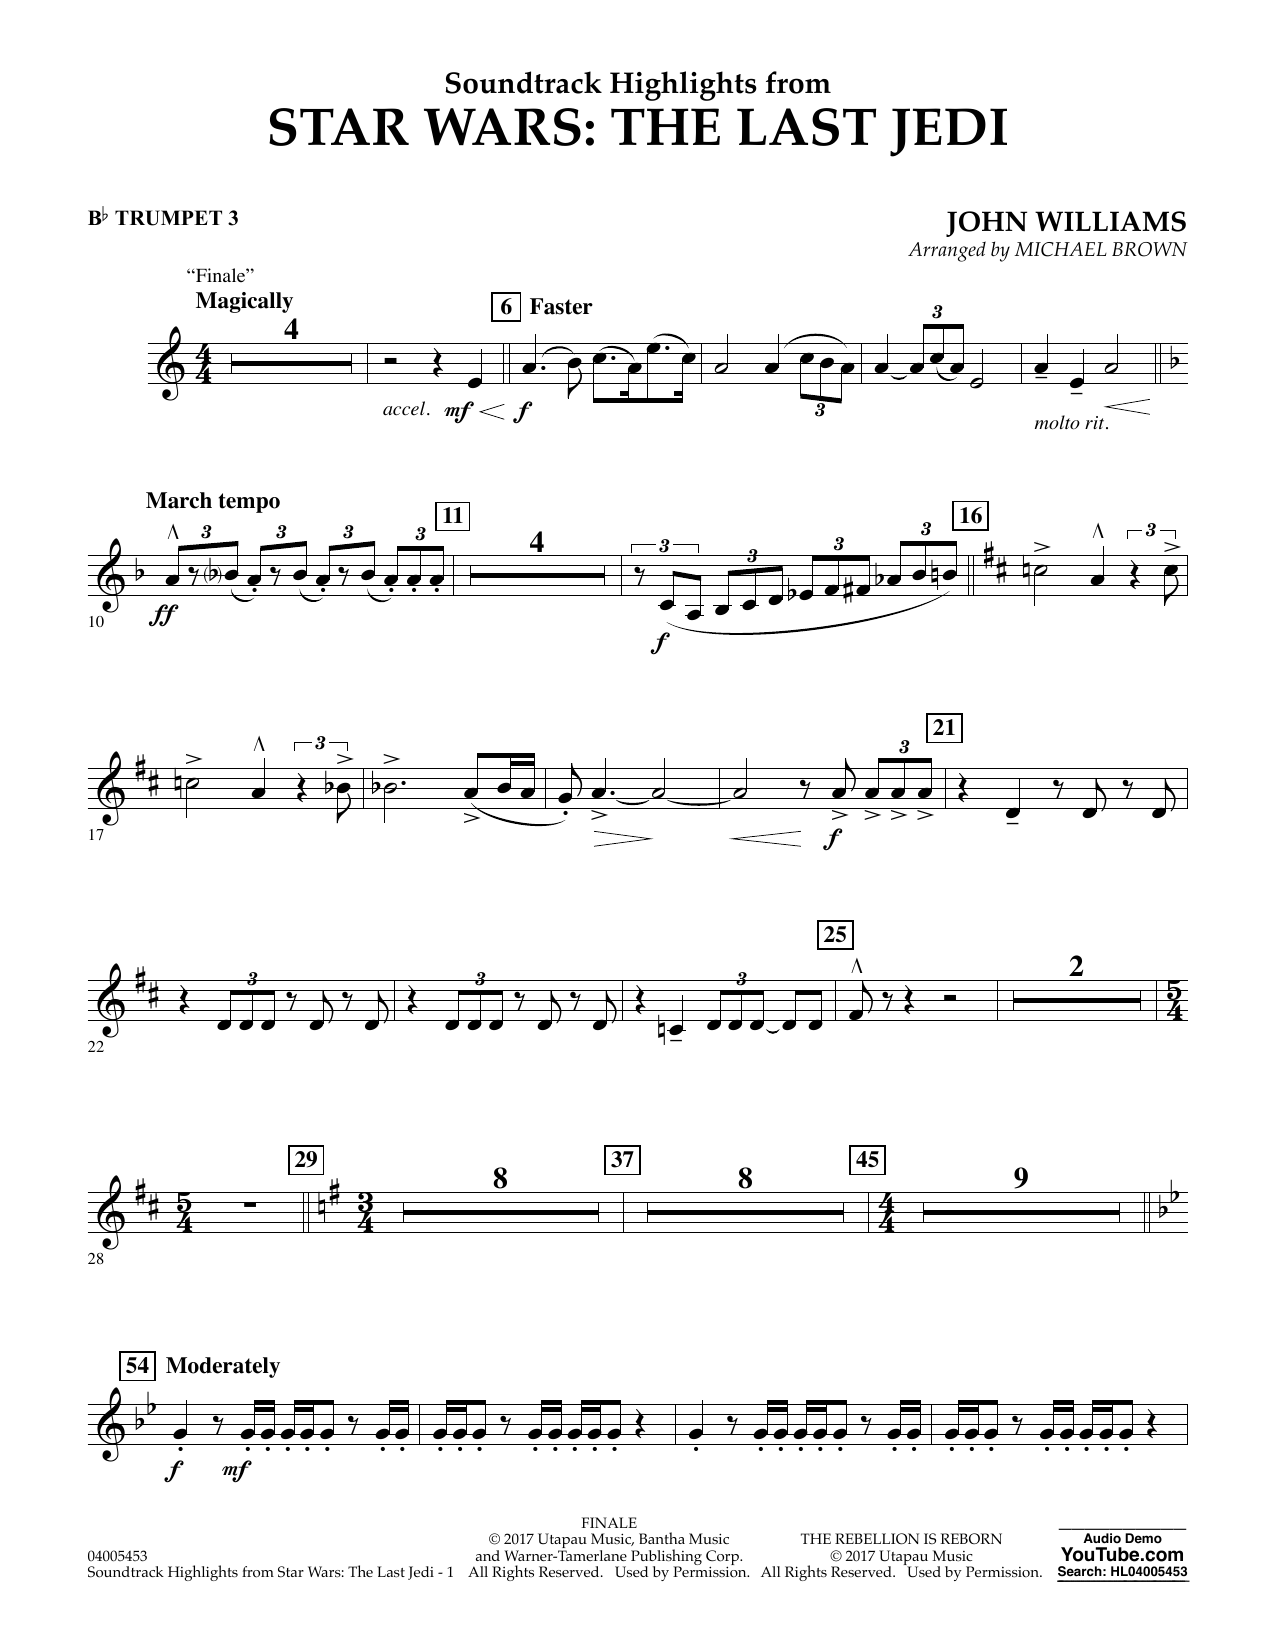 Michael Brown Soundtrack Highlights from Star Wars: The Last Jedi - Bb Trumpet 3 sheet music notes and chords. Download Printable PDF.